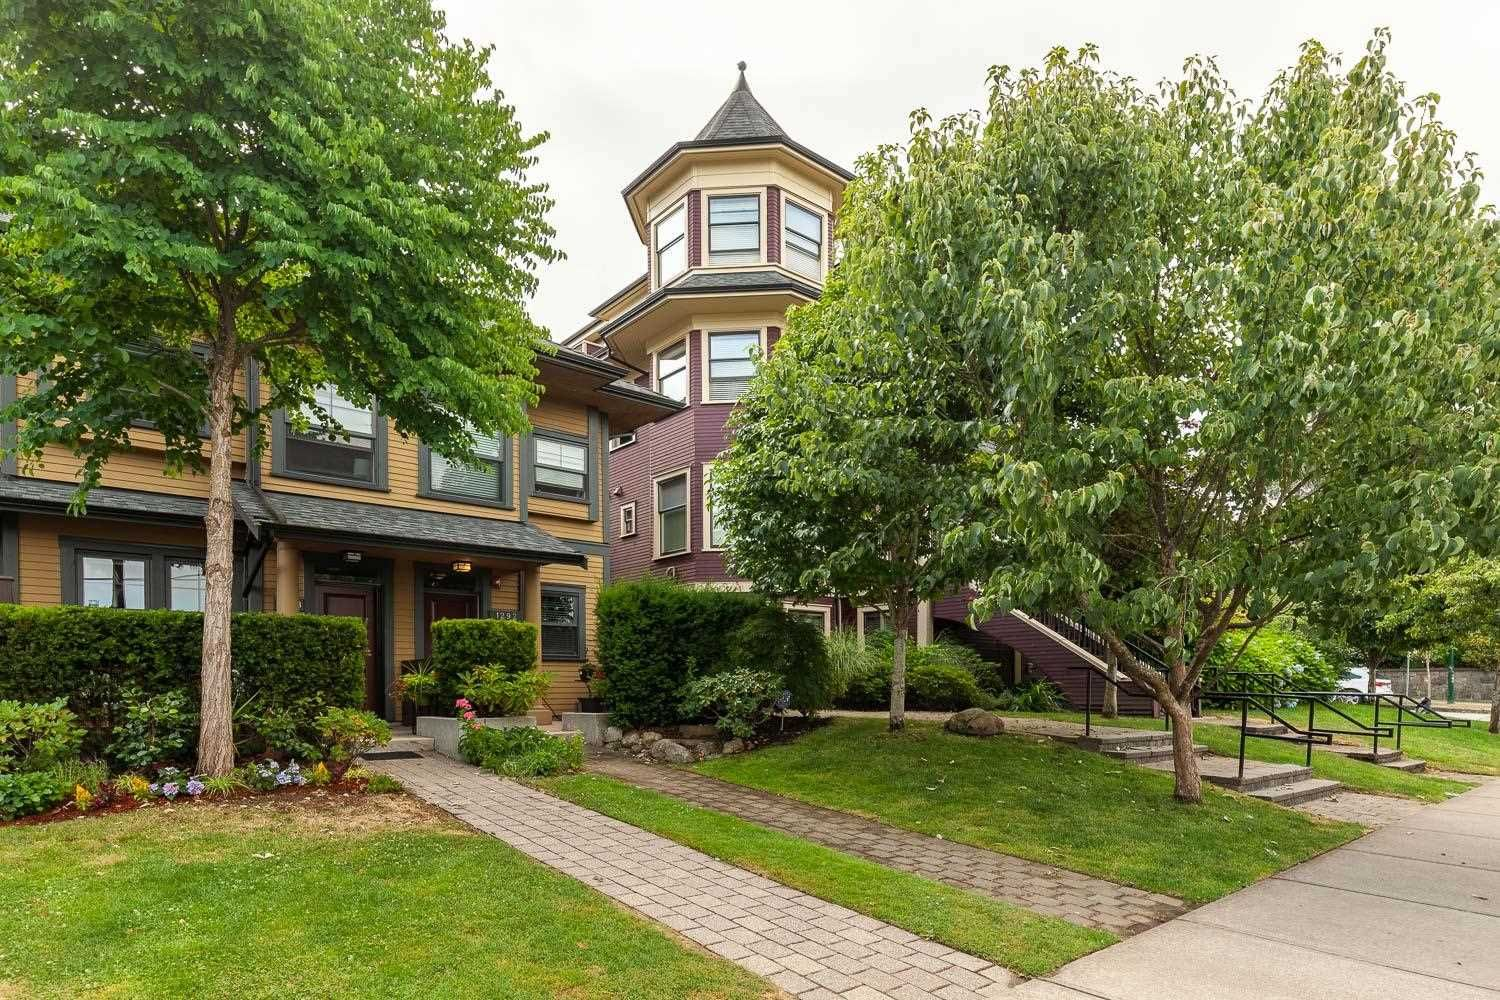 """Main Photo: 1288 SALSBURY Drive in Vancouver: Grandview Woodland Townhouse for sale in """"The Jeffs Residences"""" (Vancouver East)  : MLS®# R2599925"""